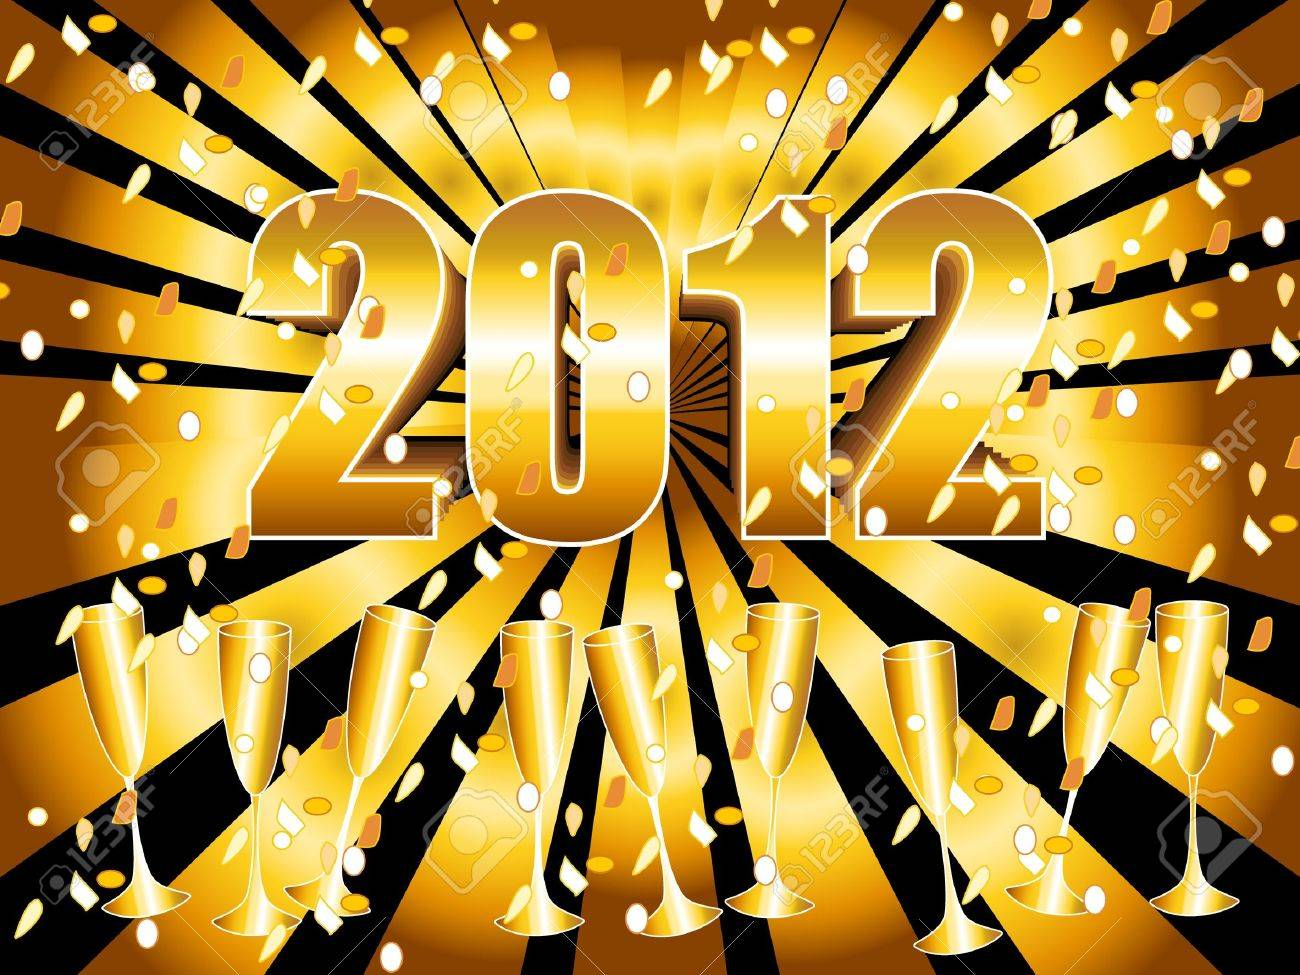 Fun and festive 2012 New Year's Eve celebration background with gold sunburst, champagne glasses and confetti. Stock Vector - 9930166